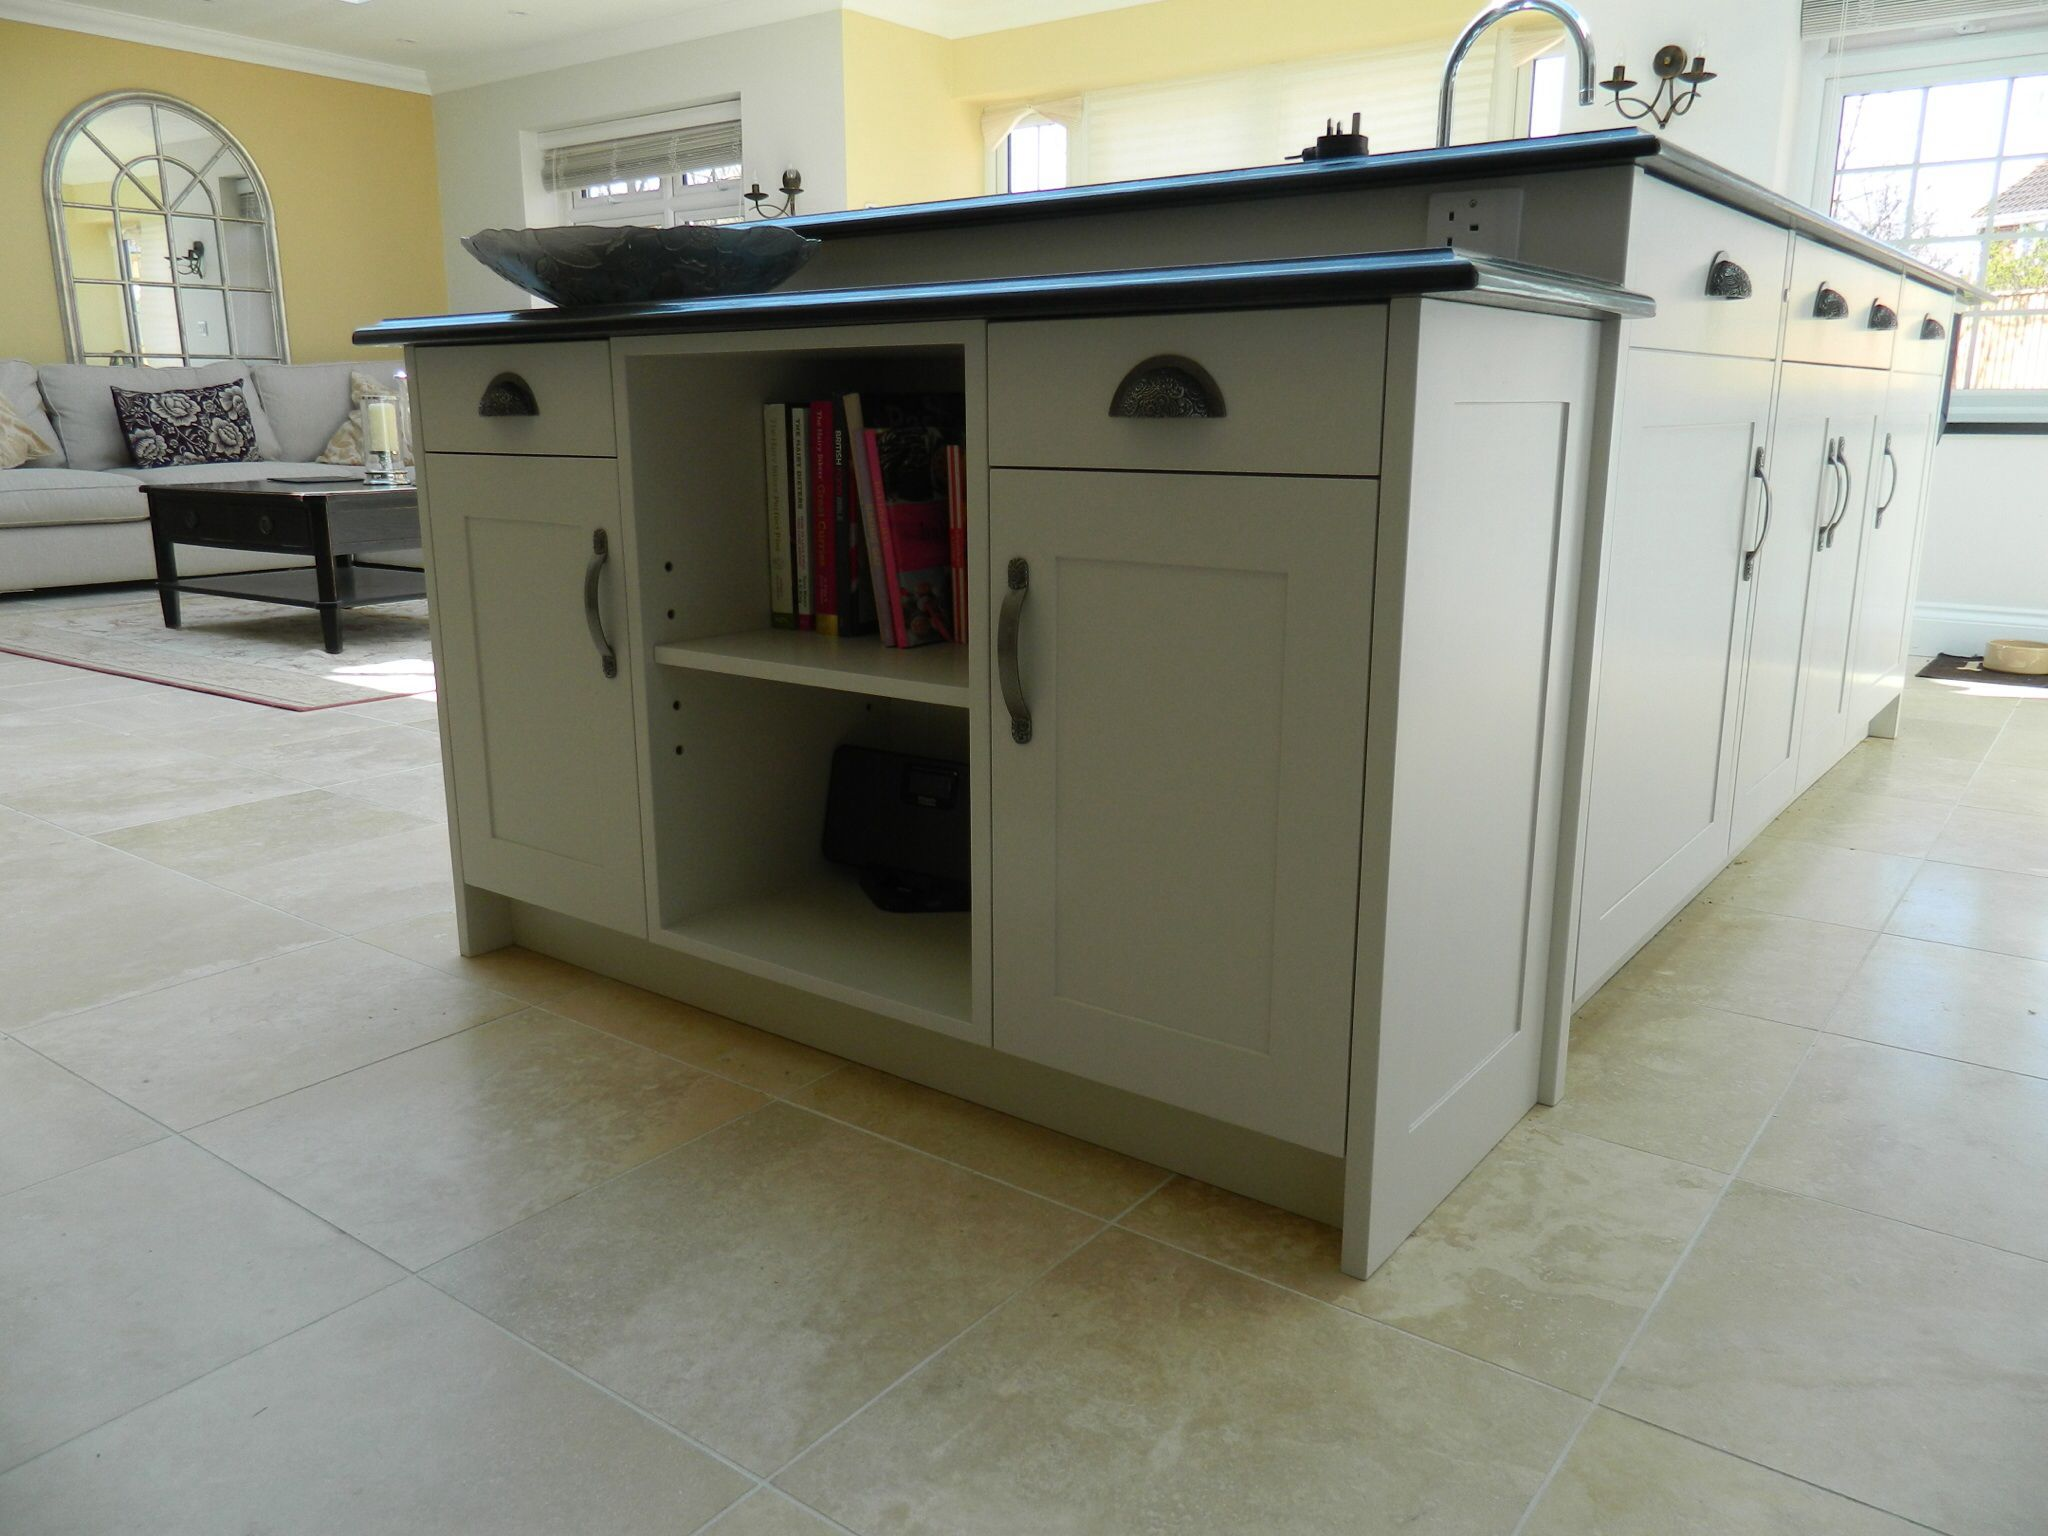 Charlottes Kitchen (painted) Photo 12